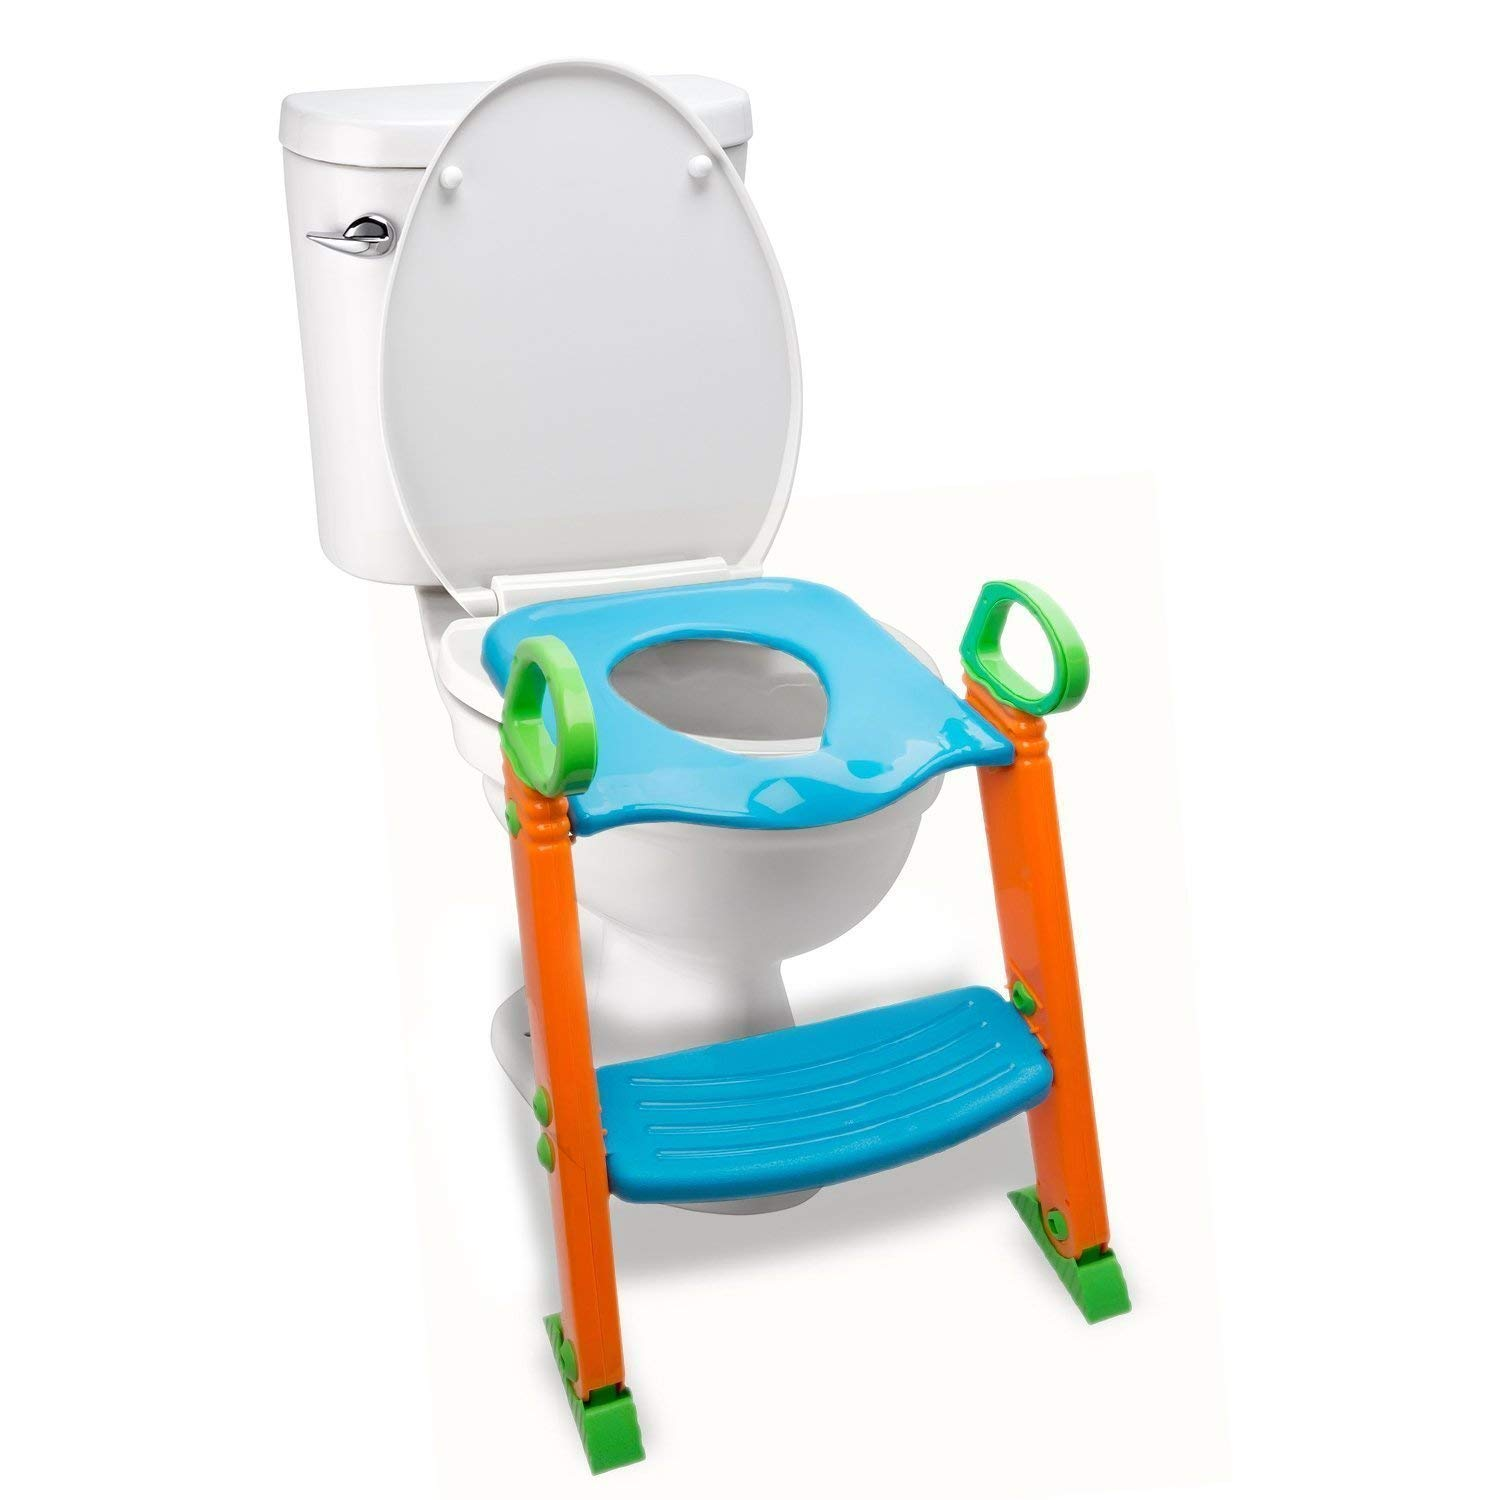 Alayna Potty Seat with Step Stool Ladder, 3 in 1 Trainer for Kids Toddlers W/Handles. Sturdy, Comfortable, Safe, Built in Non-Slip Steps W/Anti-Slip Pads. Excellent Toilet Seat Step Boys Girls Baby by Alayna